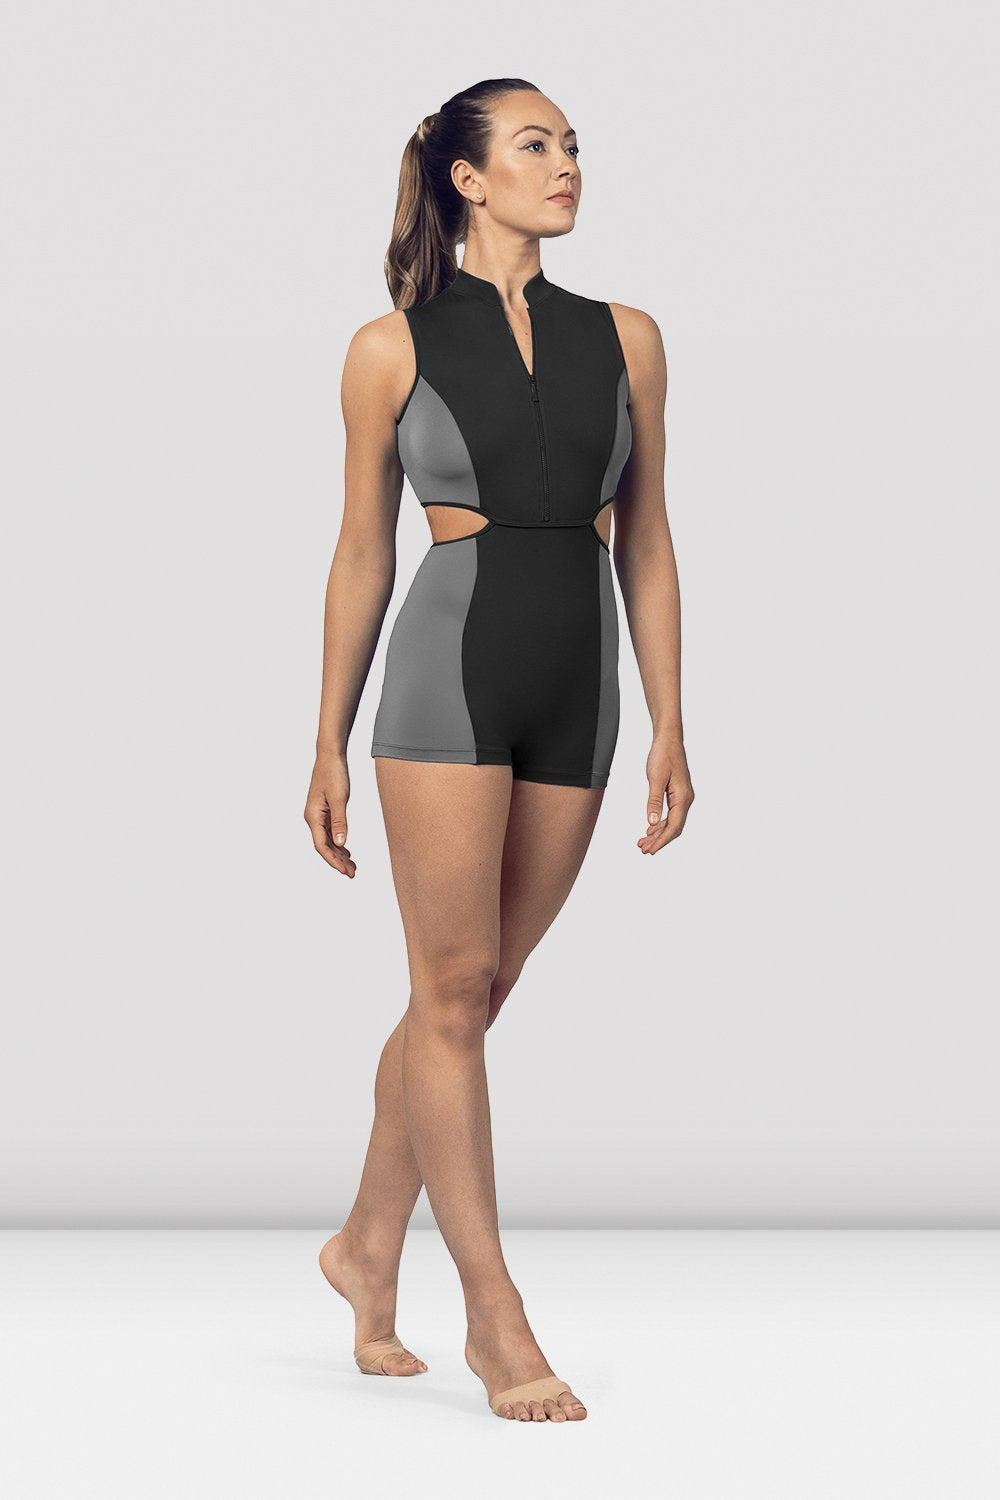 Black Bloch Ladies Zip Front Cut Out Biketard on female model in parallel foruth position facing corner